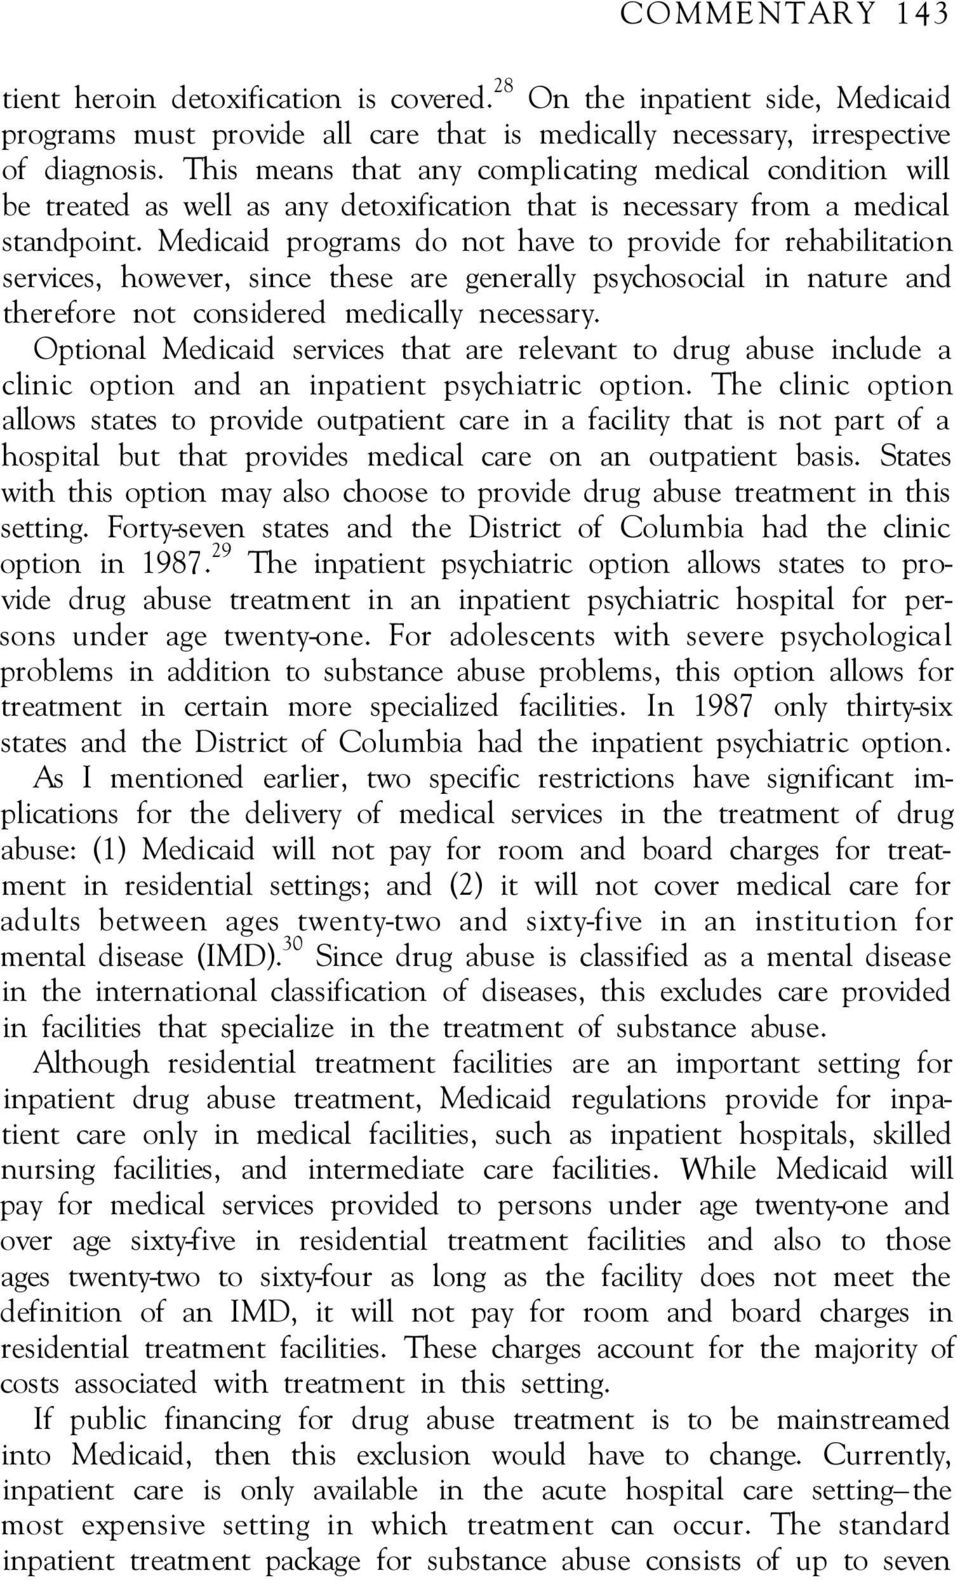 Medicaid programs do not have to provide for rehabilitation services, however, since these are generally psychosocial in nature and therefore not considered medically necessary.